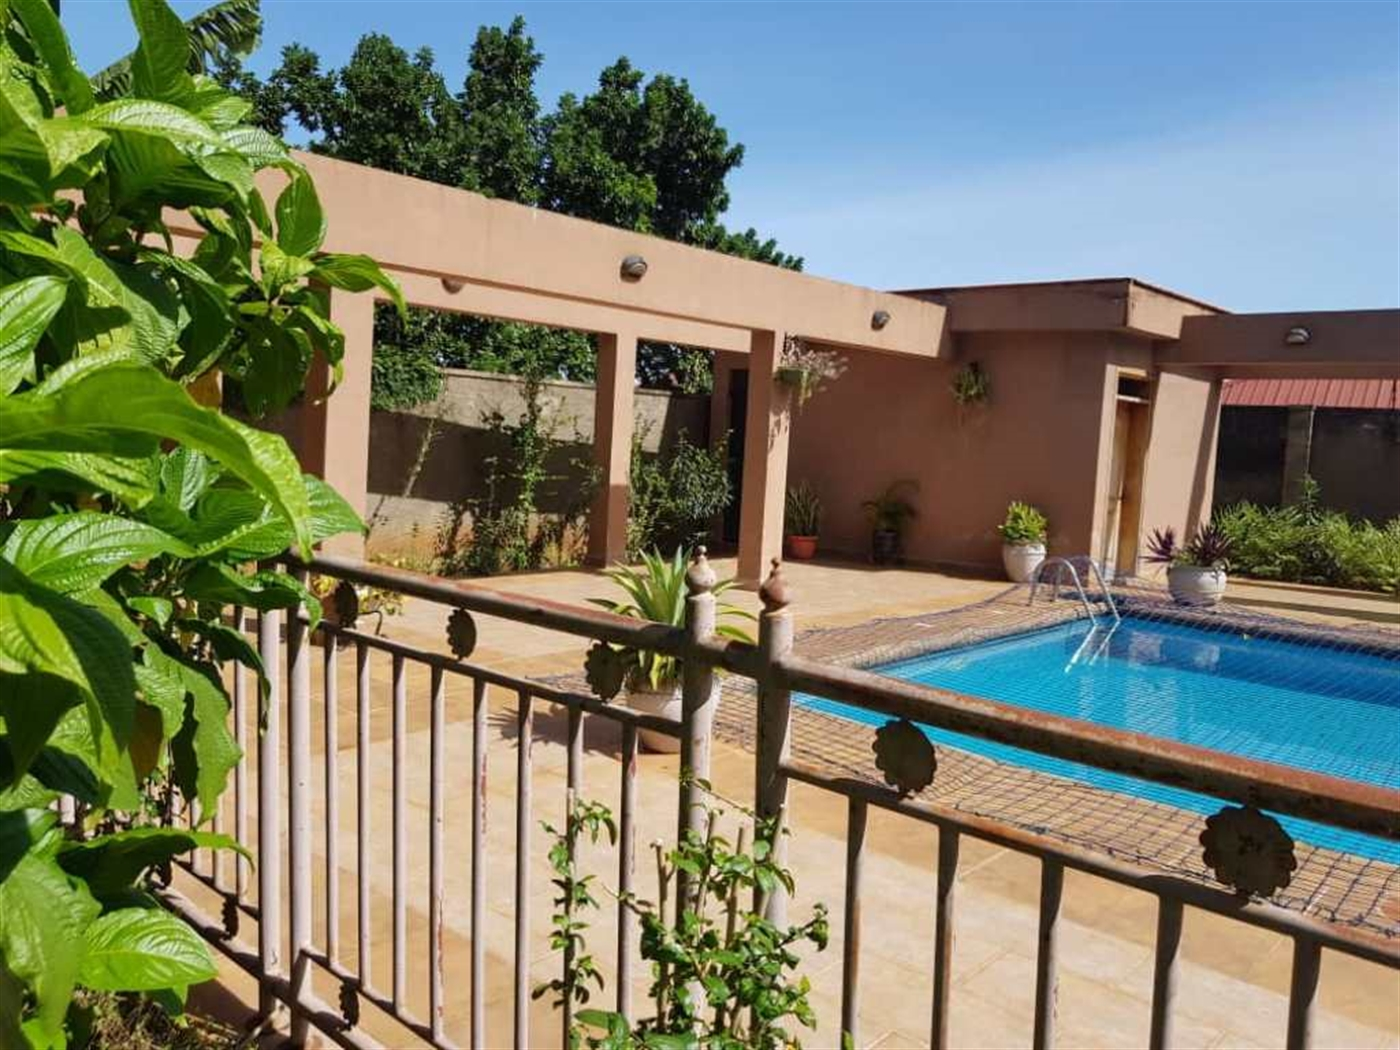 Mansion for sale in Bbunga Kampala